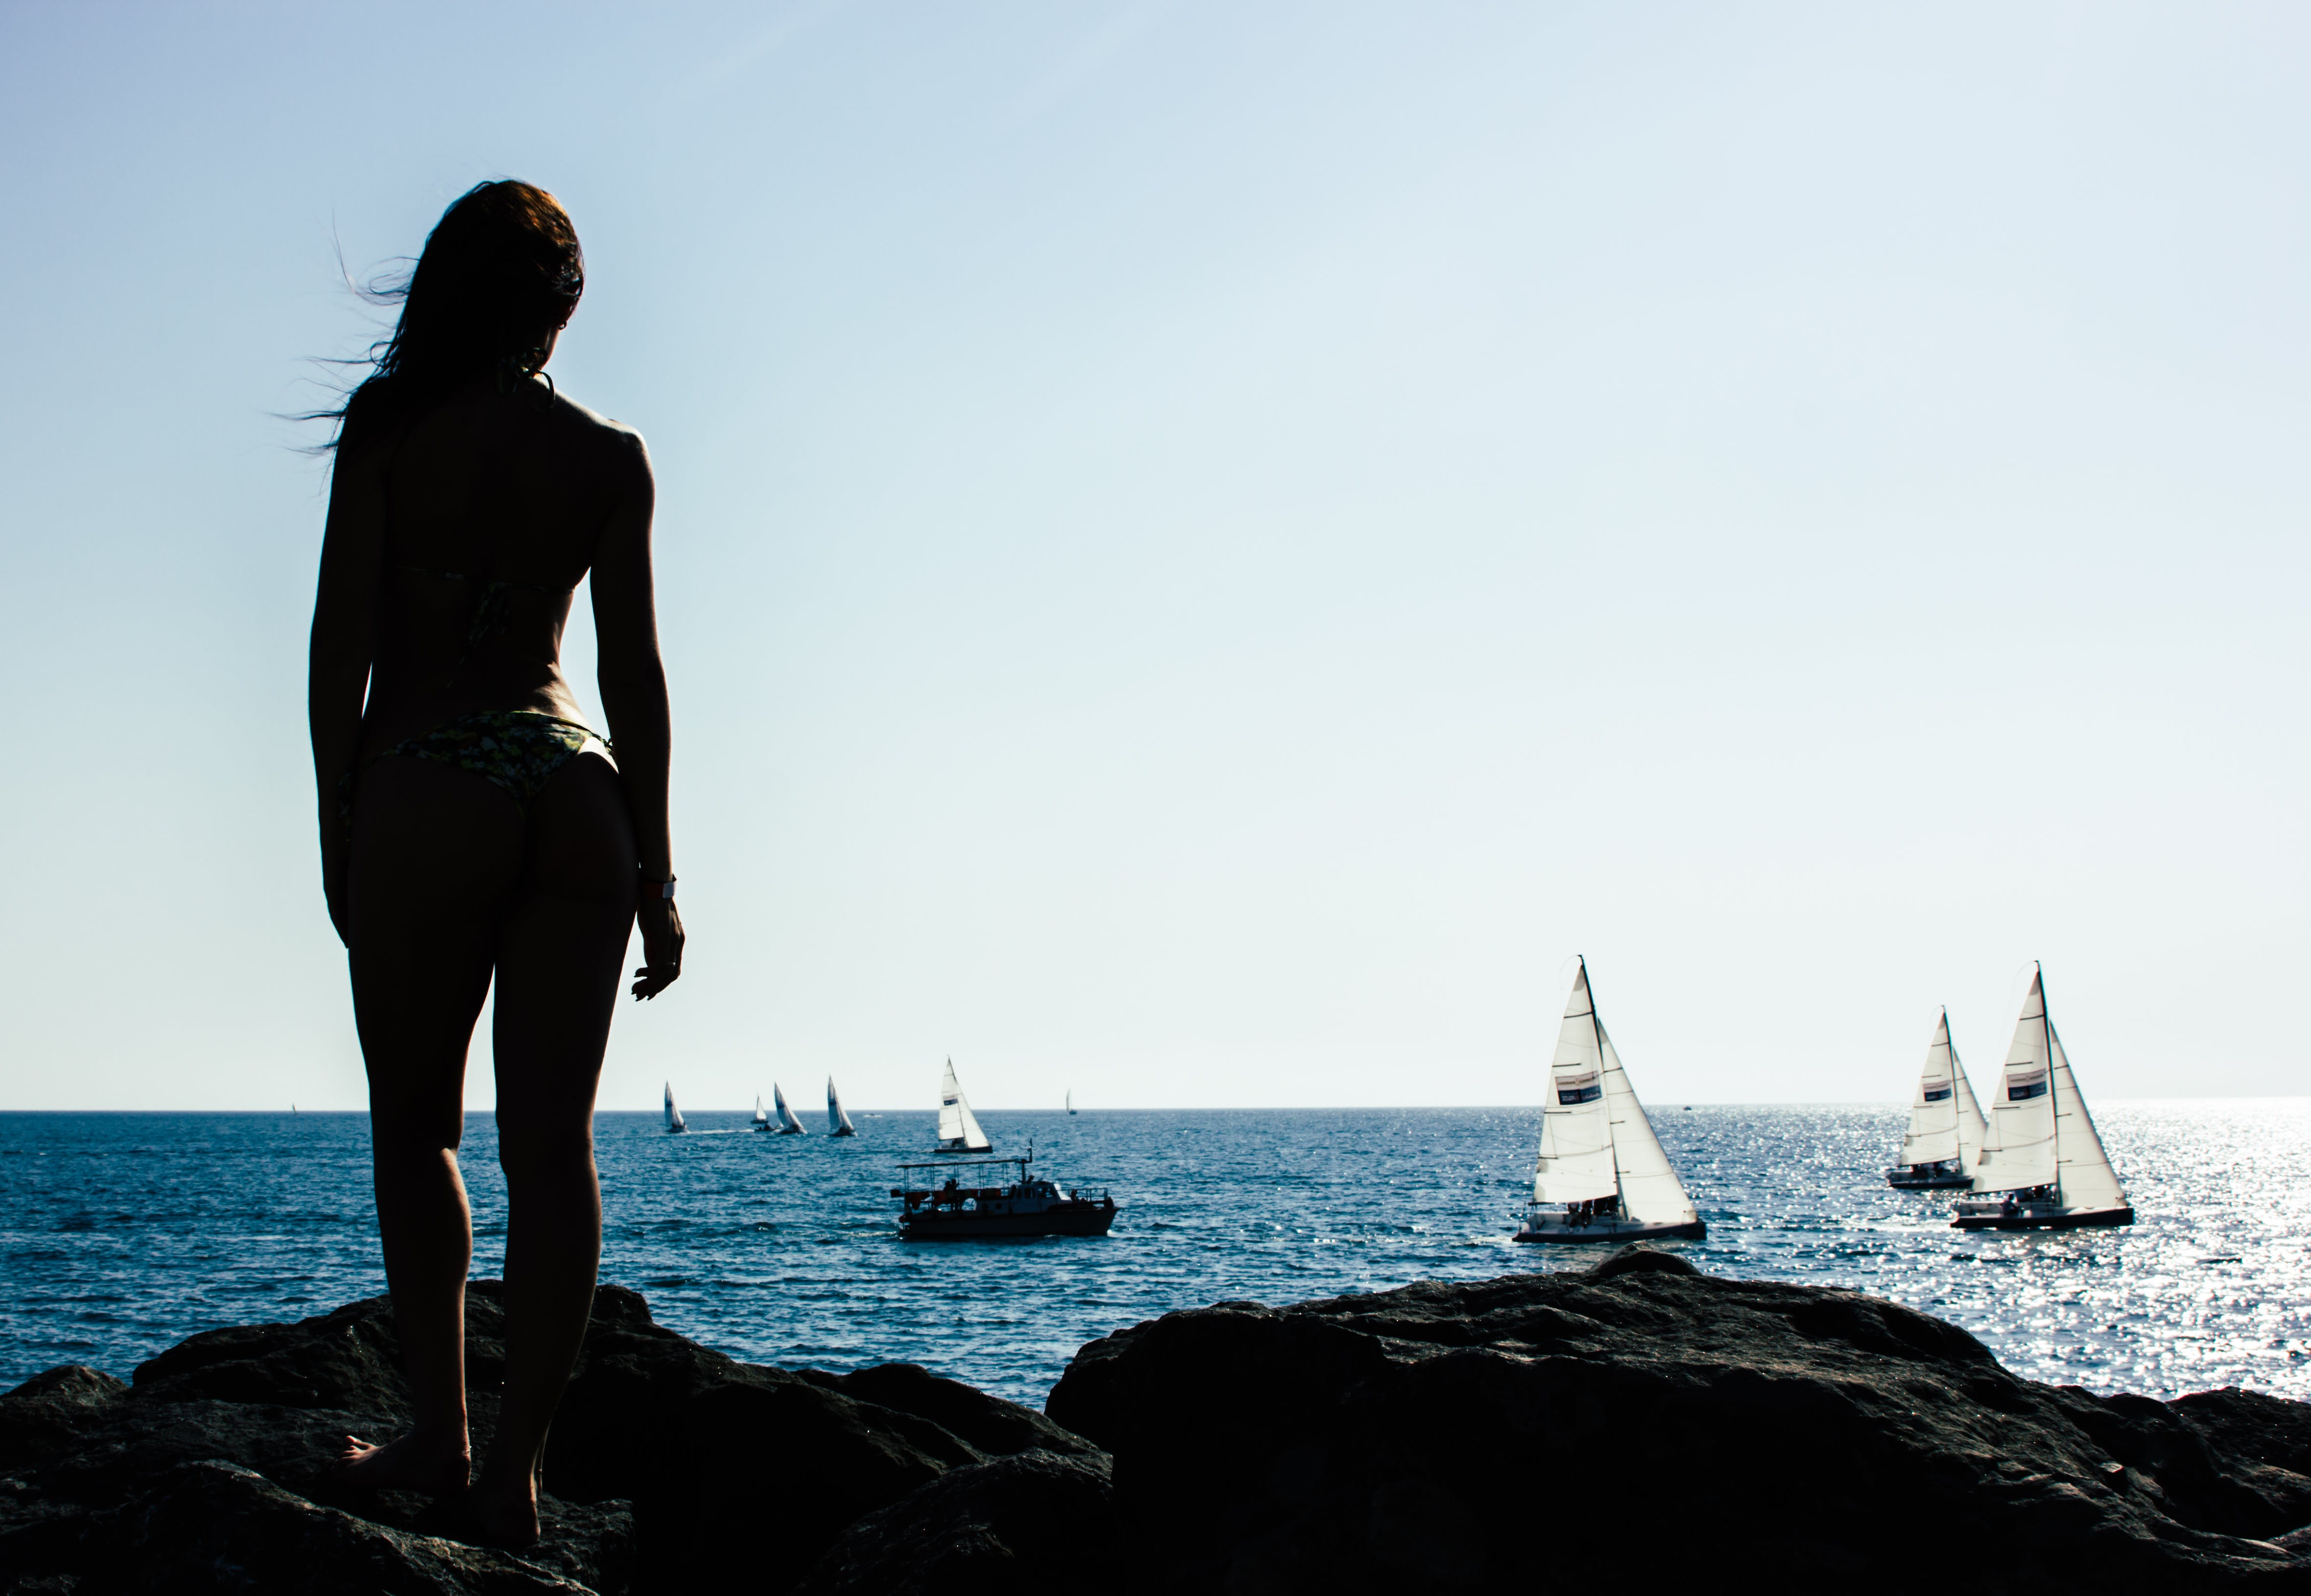 Woman Standing on Rock With Sailing Boats on Sea